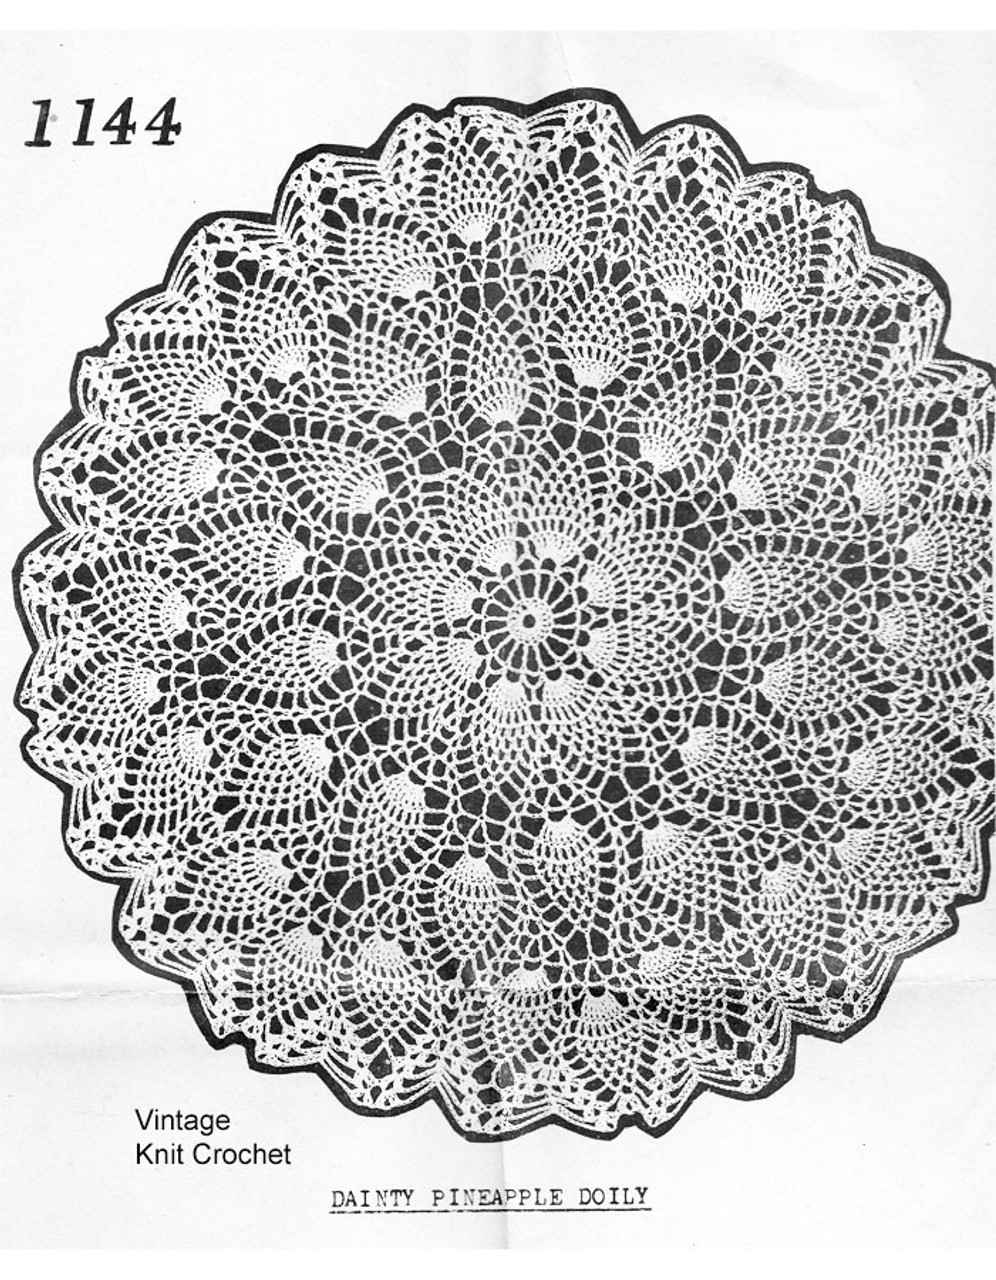 Mail Order 1144, Crochet Pineapple Dainty Doily Pattern